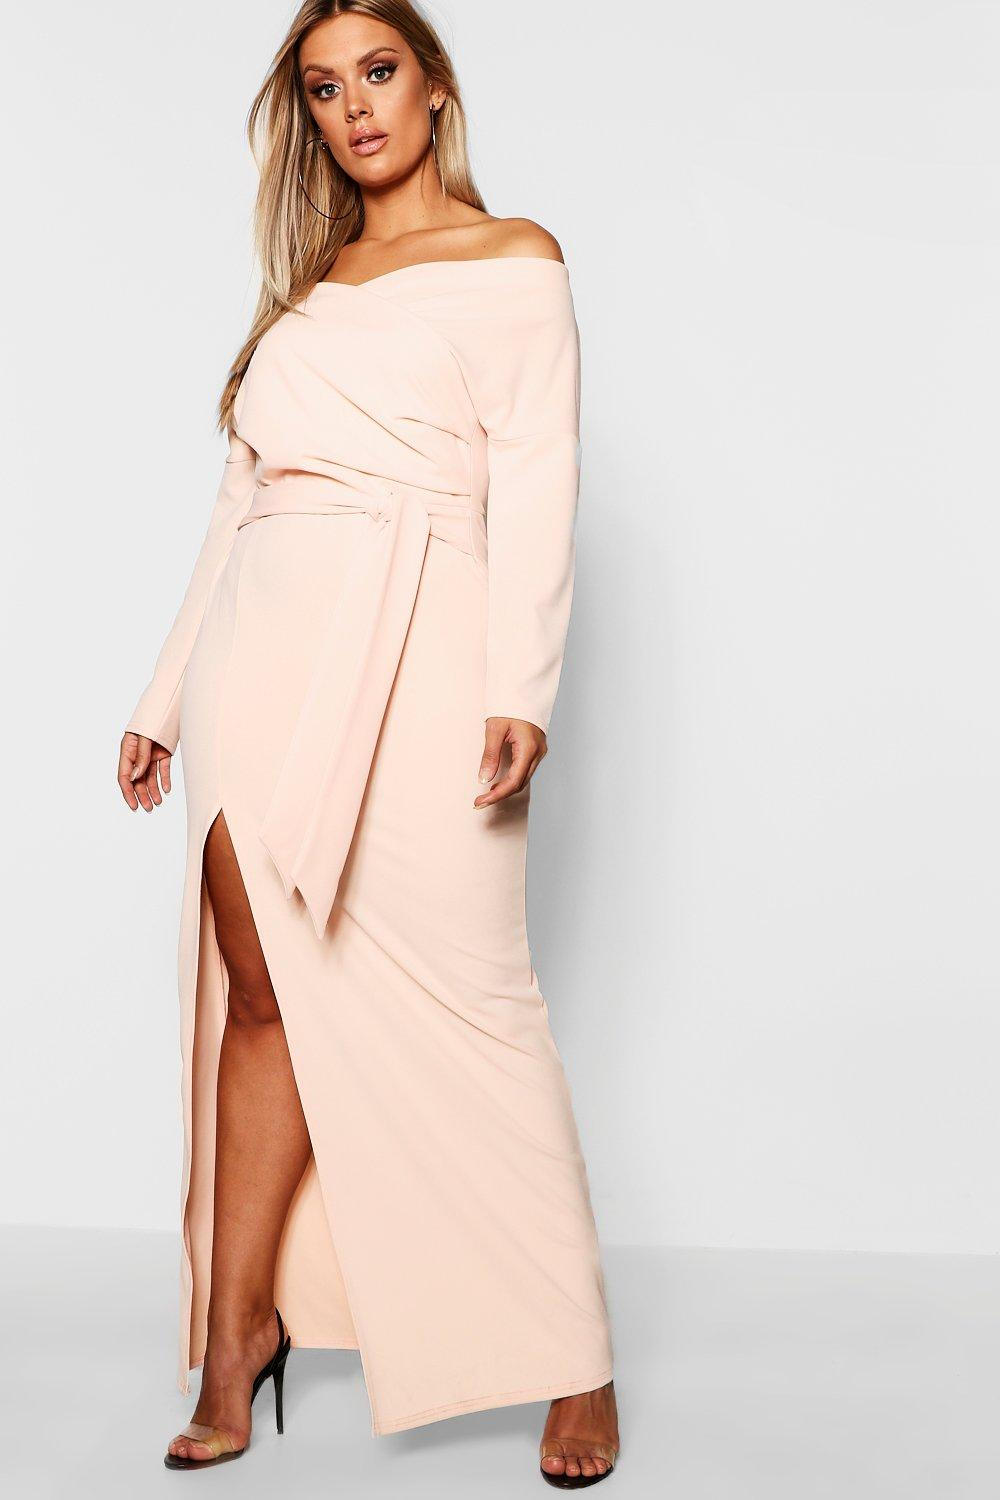 boohoo Womens Plus Off The Shoulder Wrap Dress - Beige - 18, Beige